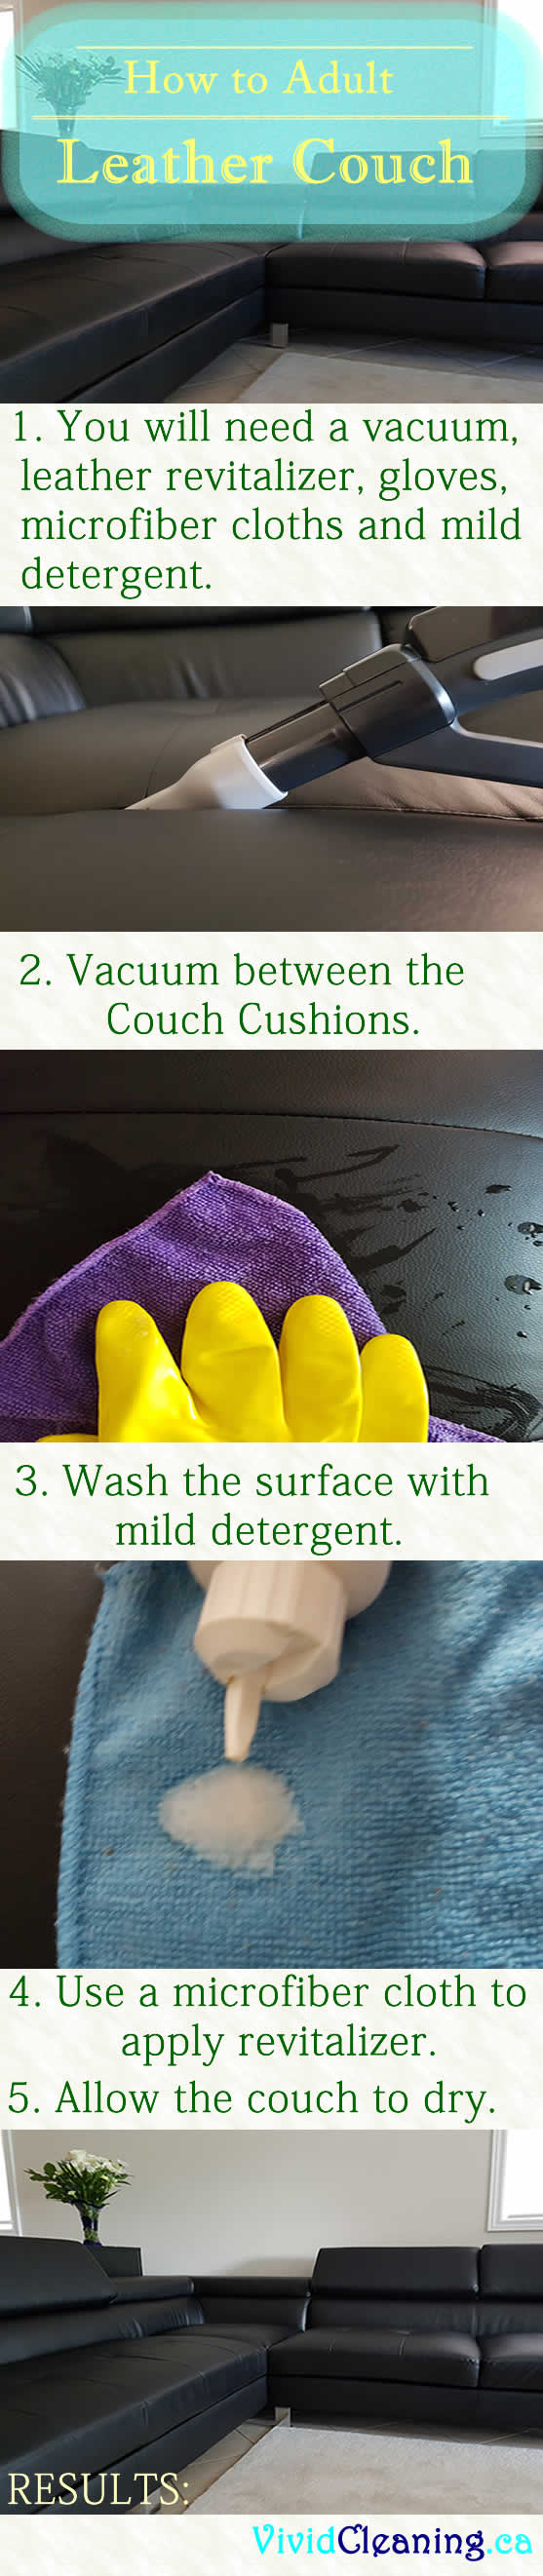 How to Clean a Sectional Leather Couch - Vivid Cleaning